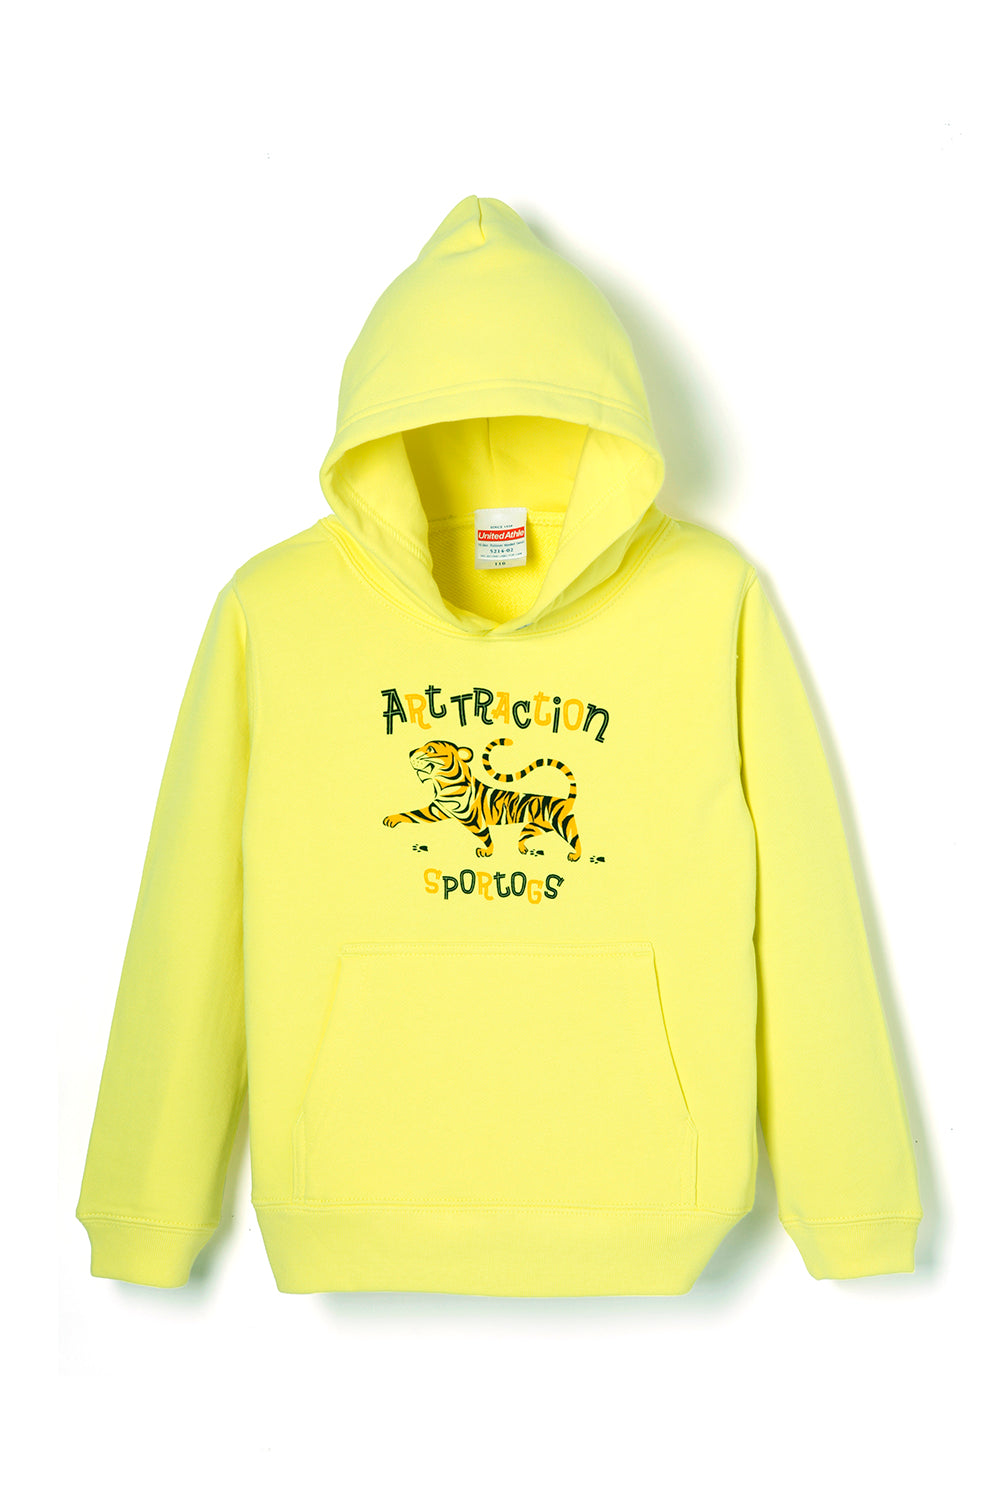 ART068 Kids Tiger Parka -Yellow-